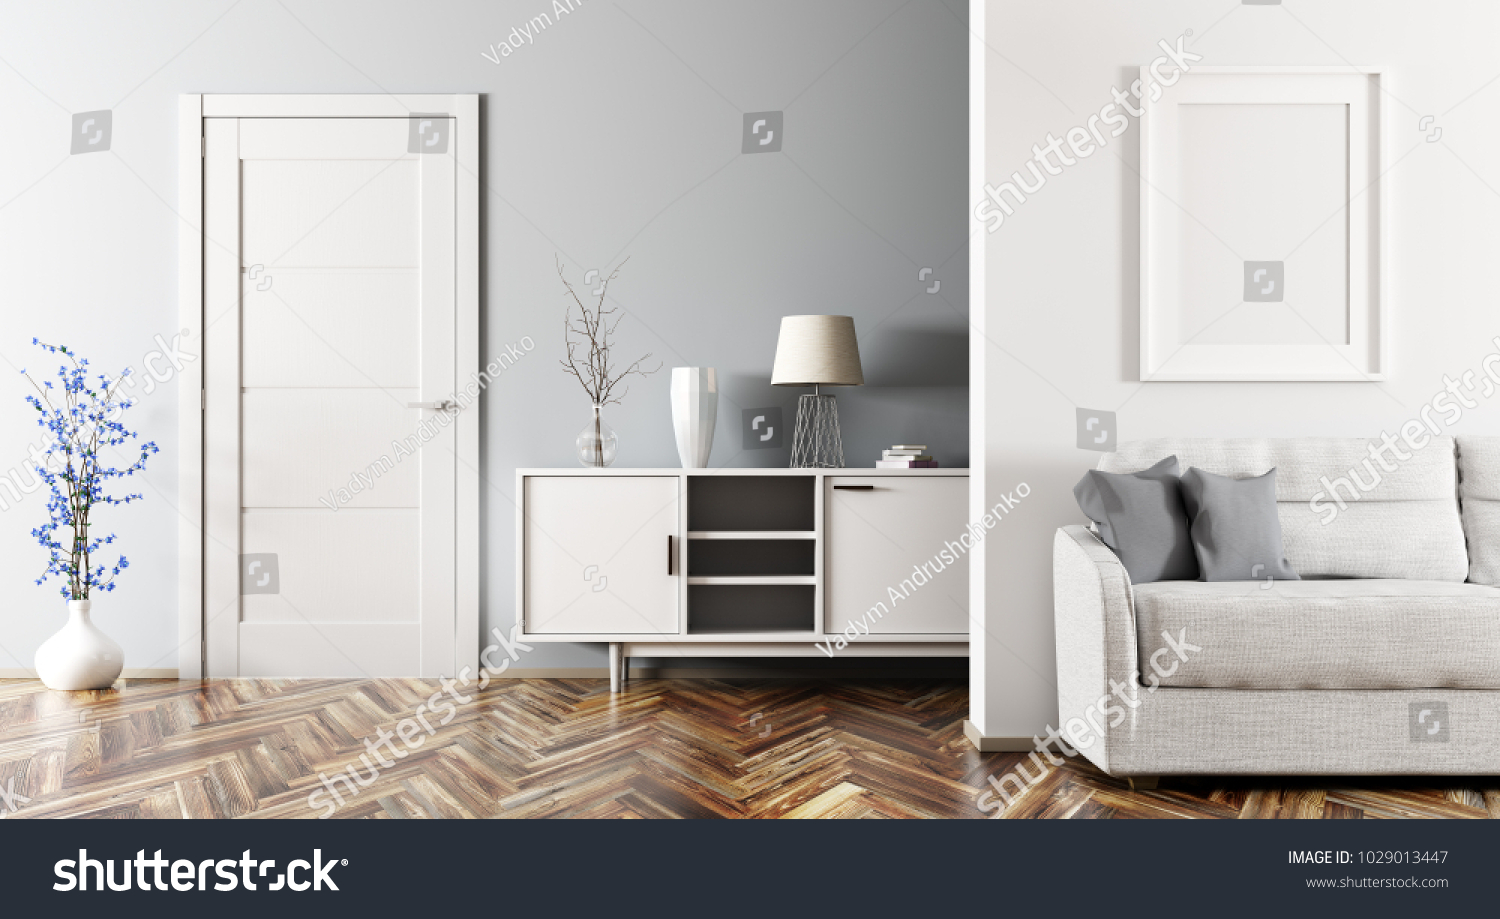 Modern interior of living room with sofa, cabinet and door 3d ...